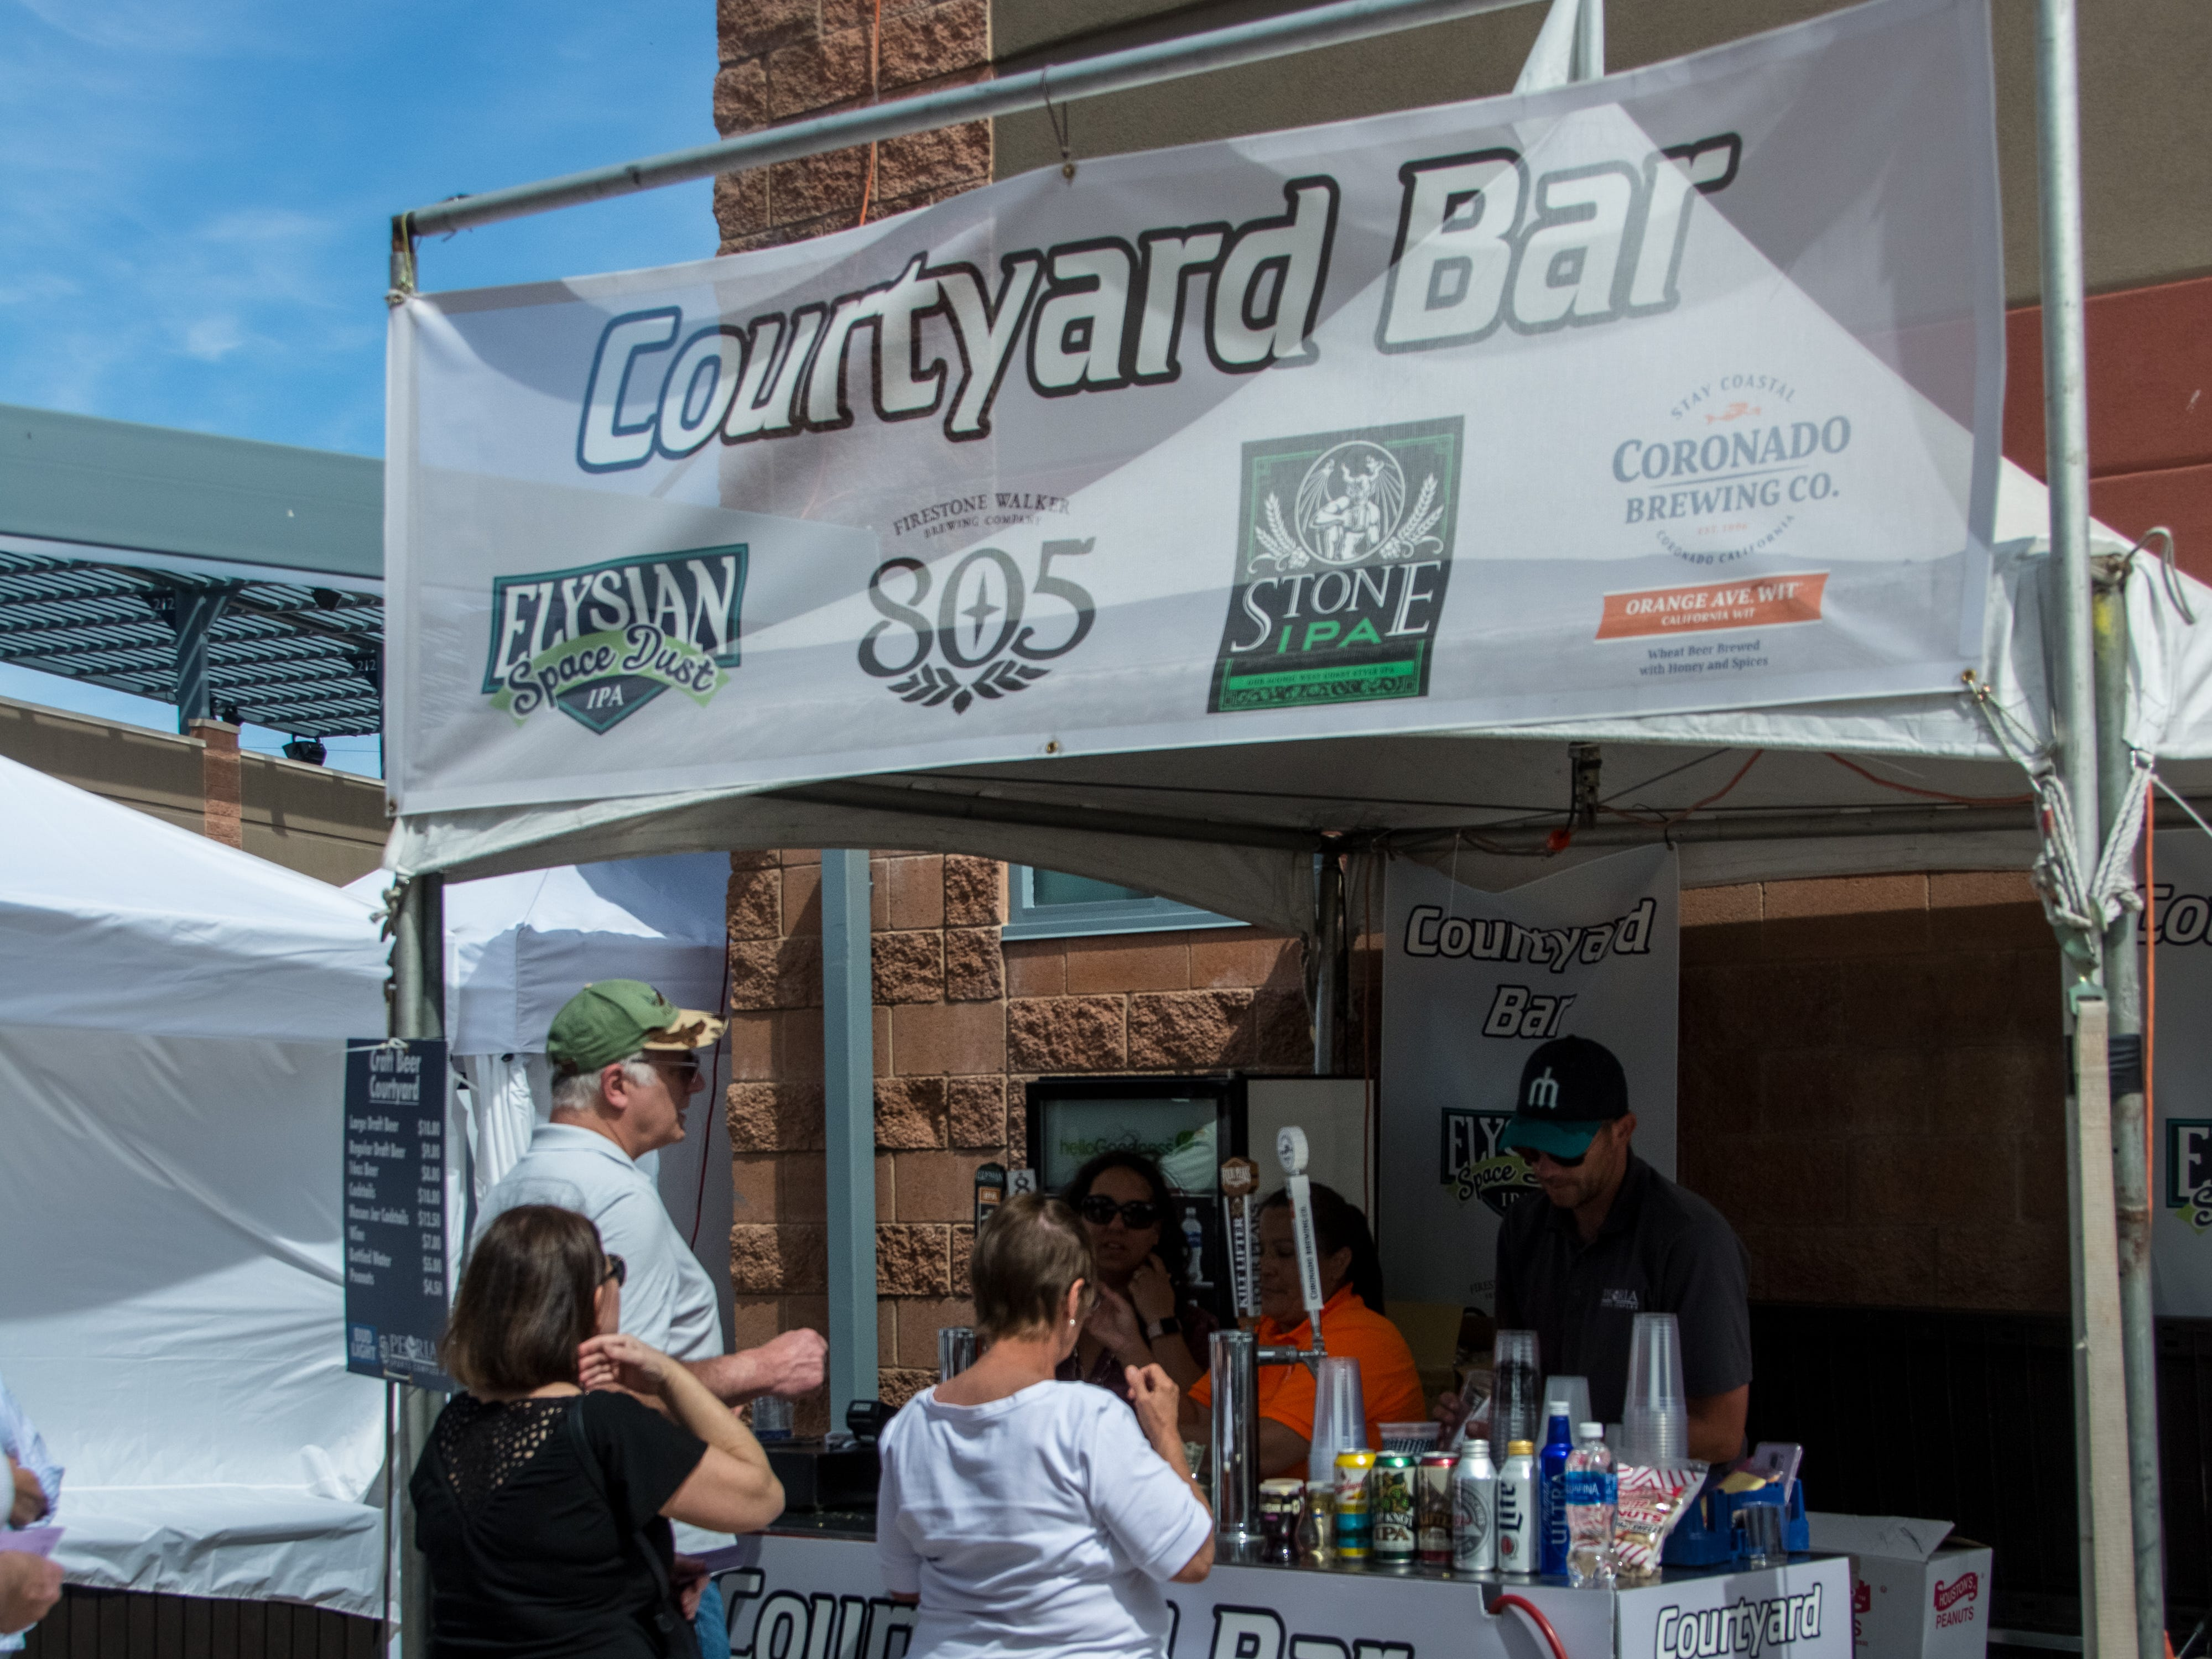 The Courtyard Bar at the Peoria Sports Complex.